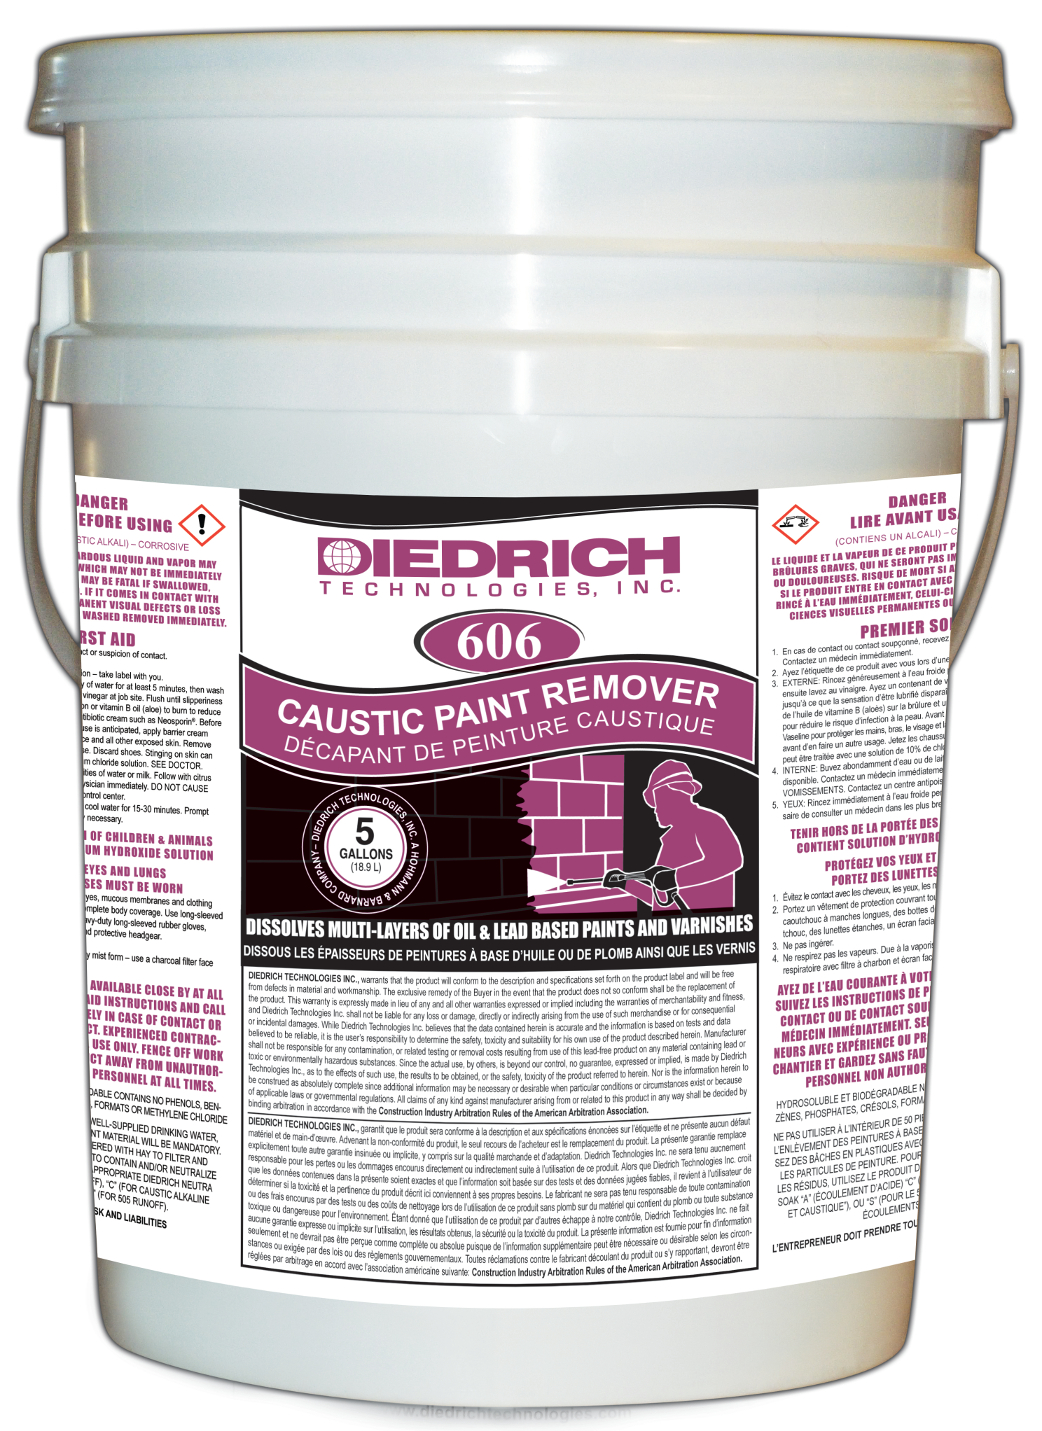 606 CAUSTIC PAINT REMOVER